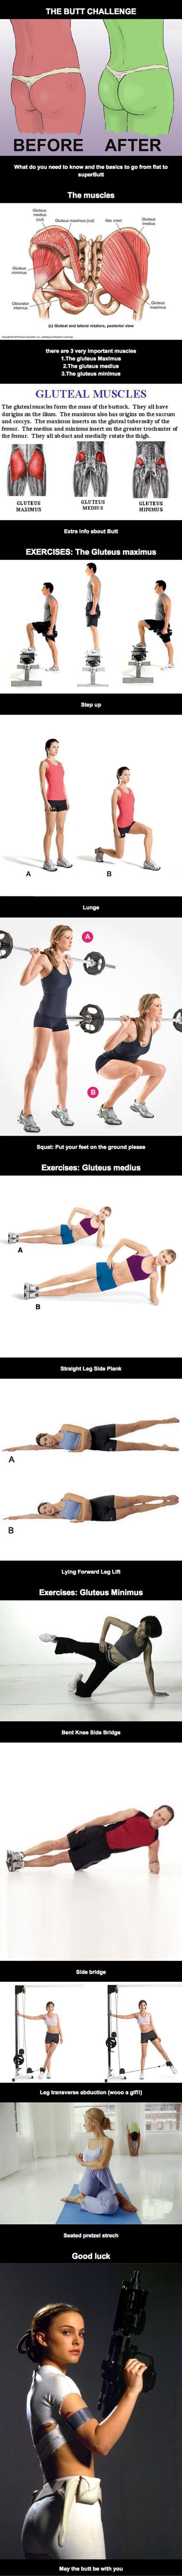 Butt exercises. This is for you @heysony !